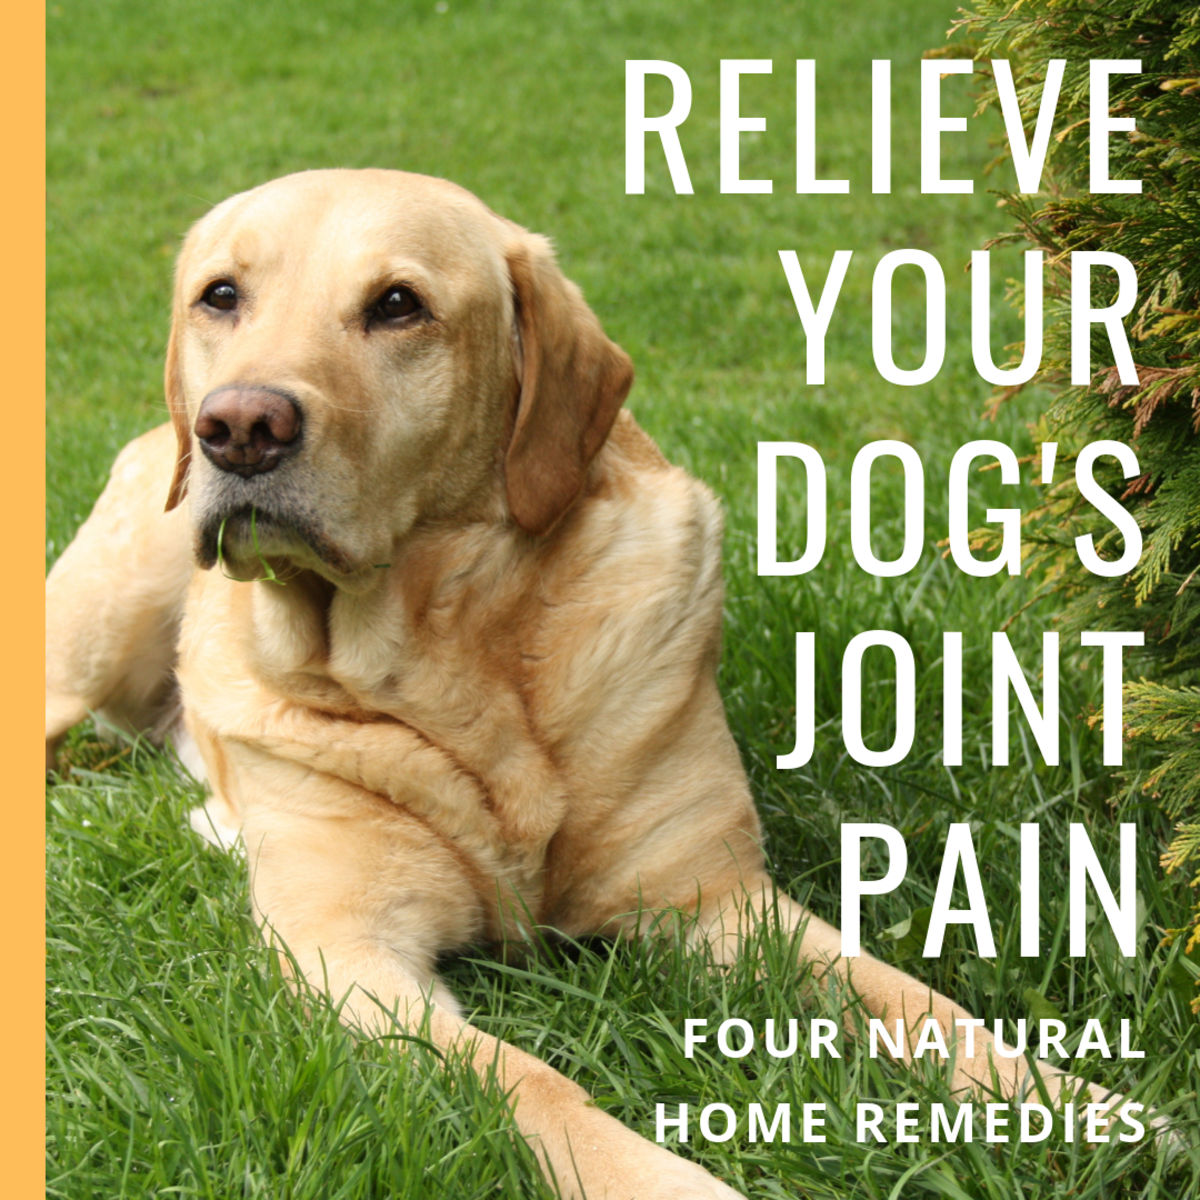 Here are four home remedies that provided relief for my dog's joint problems.